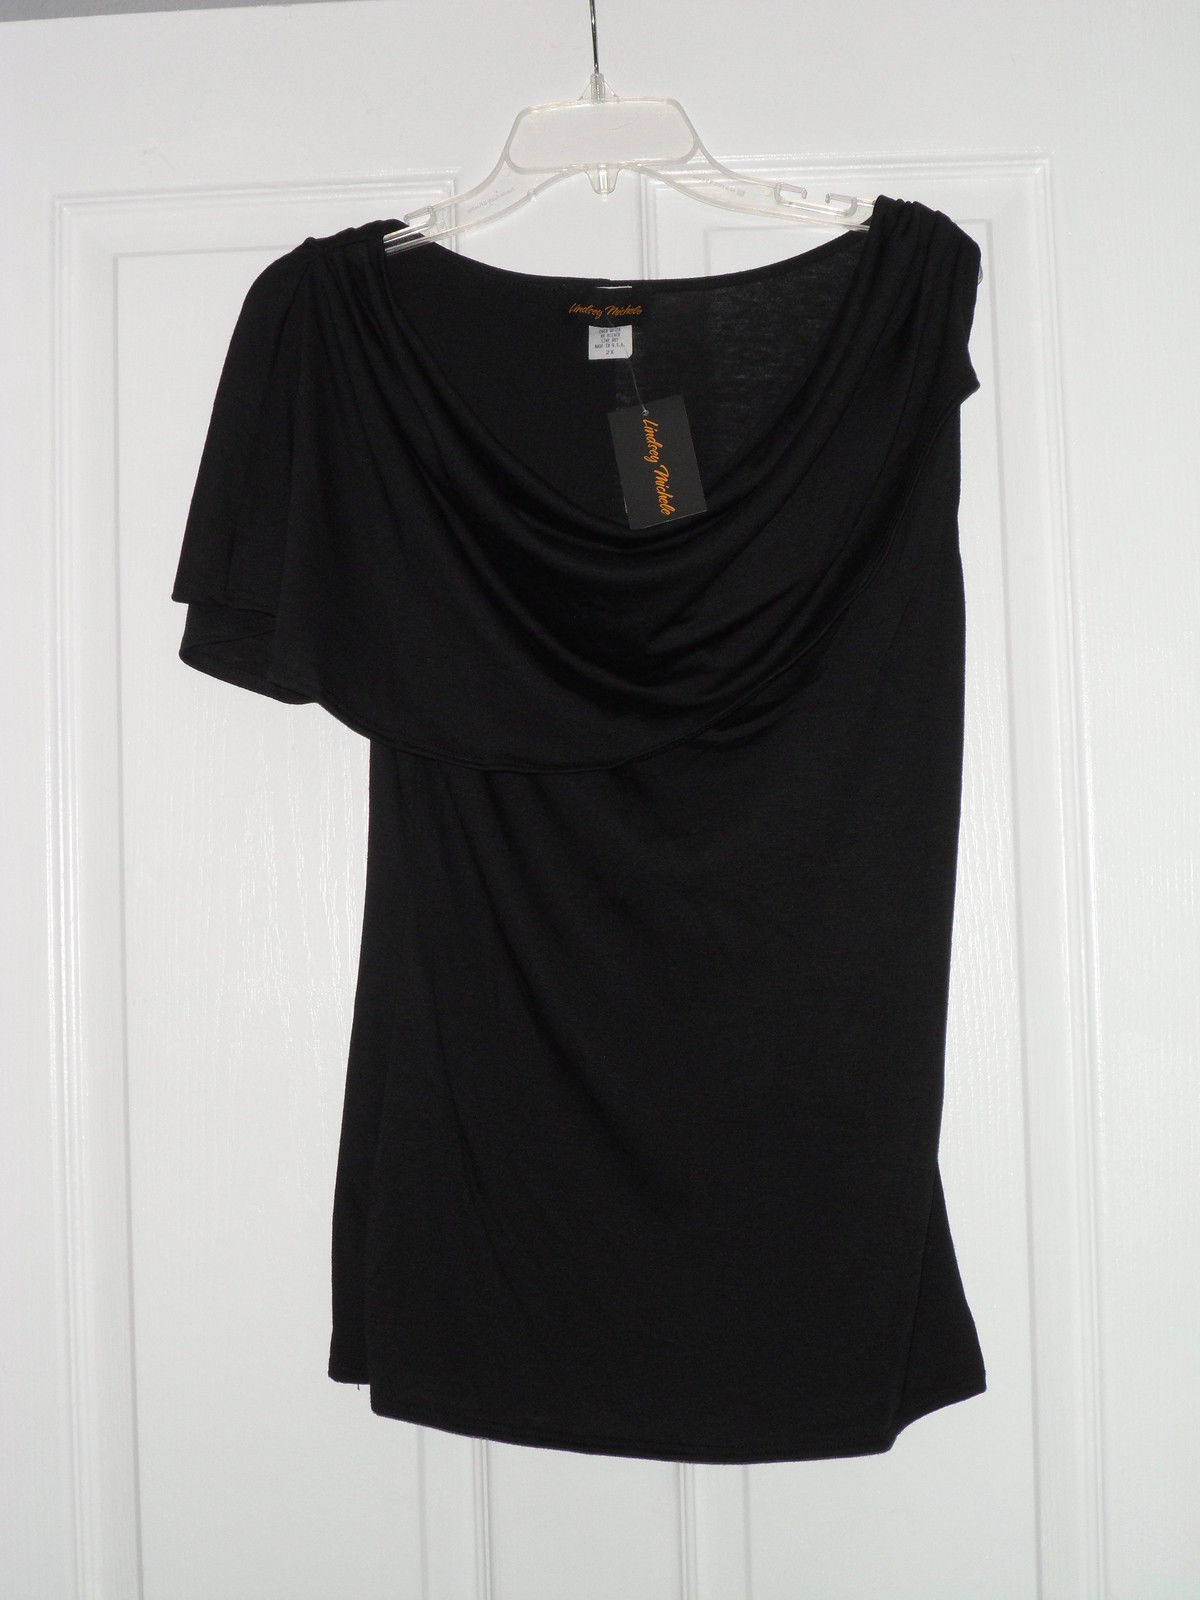 LINDSEY MICHELE BLOUSE STRETCH TOP  SIZE L / XL BLACK  U.S.A.NWT - $14.99